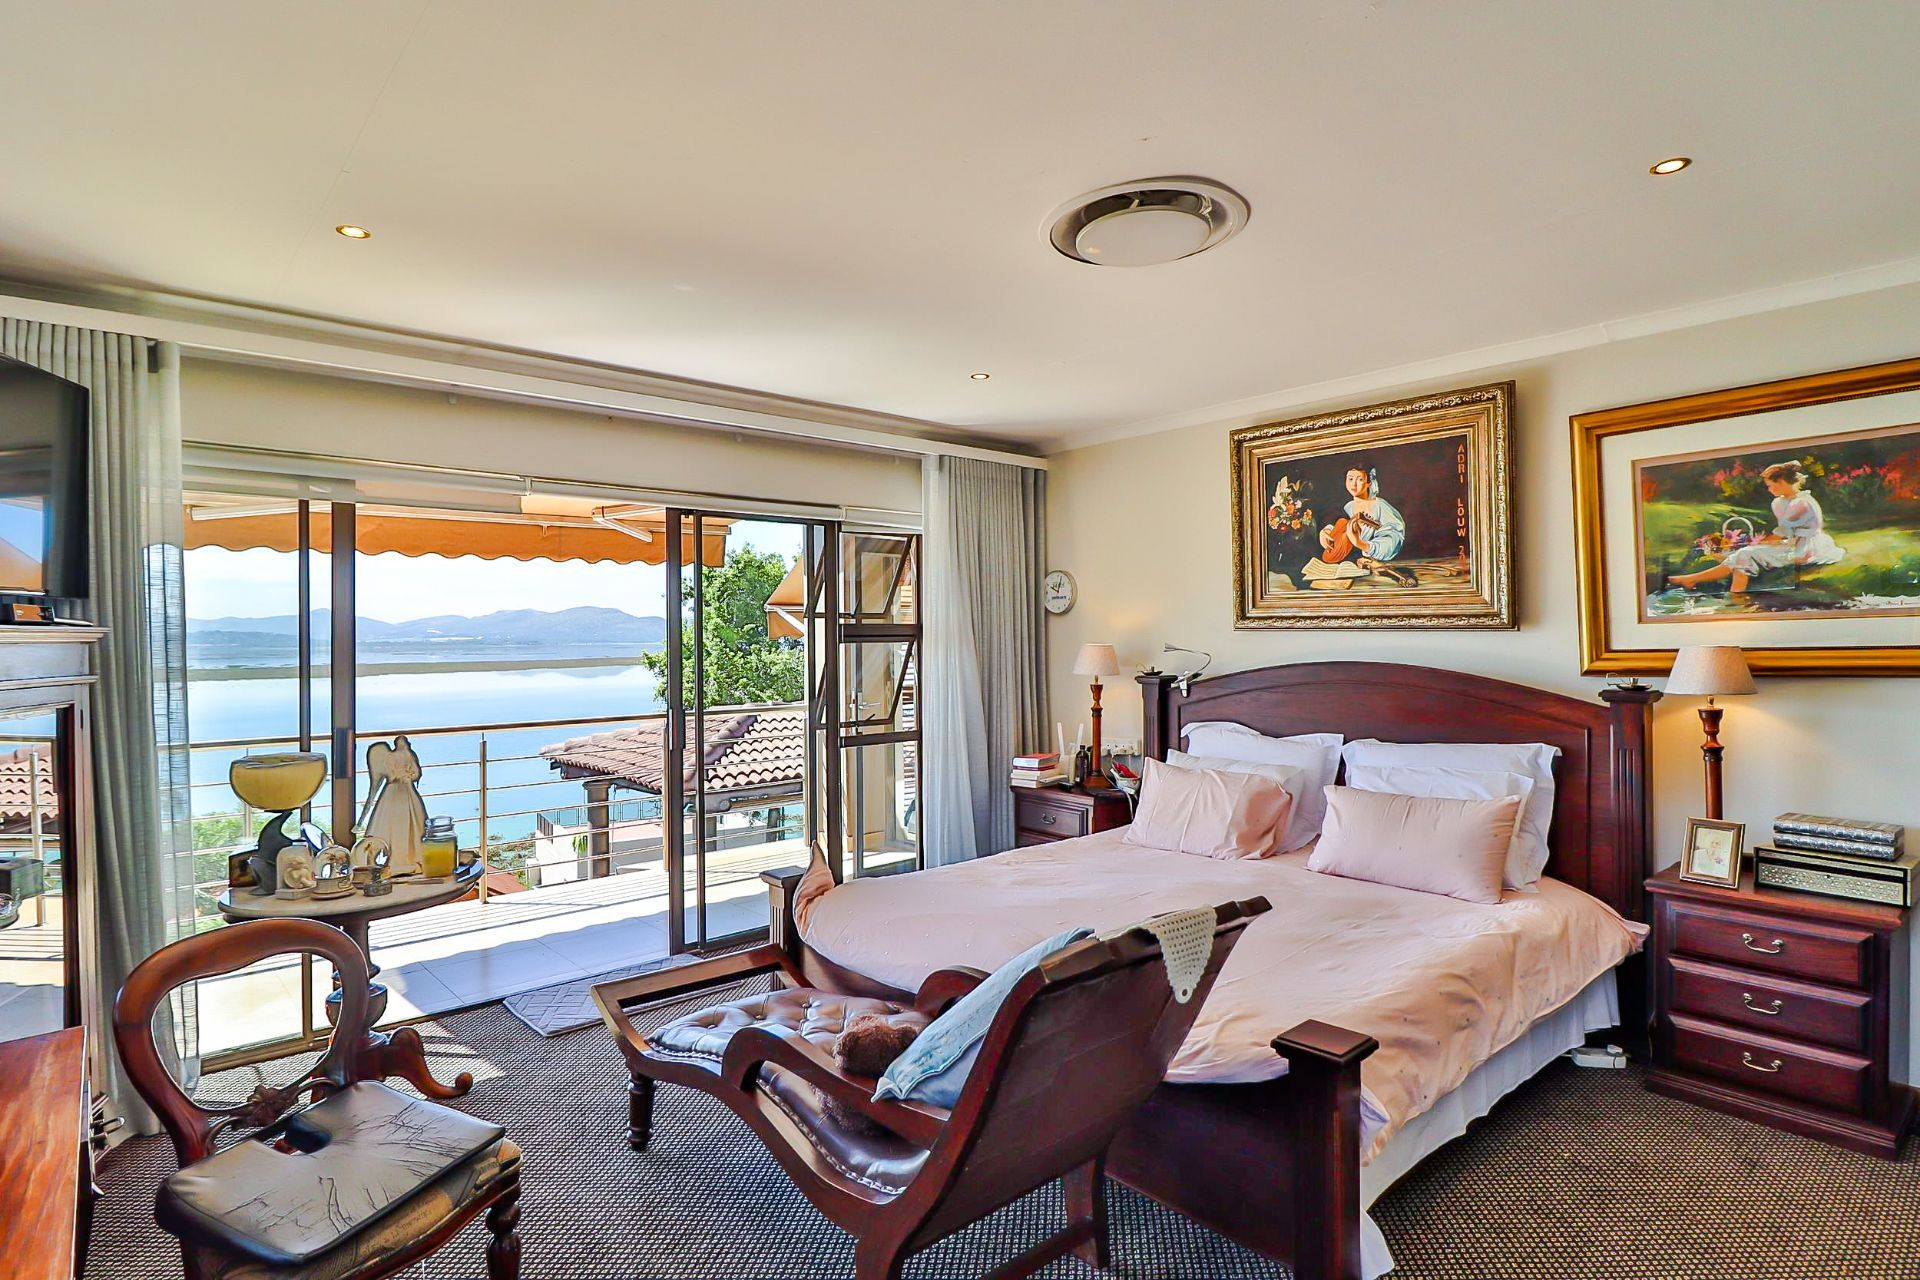 House in Kosmos Village - Views from the bedrooms are absolutely gorgeous!